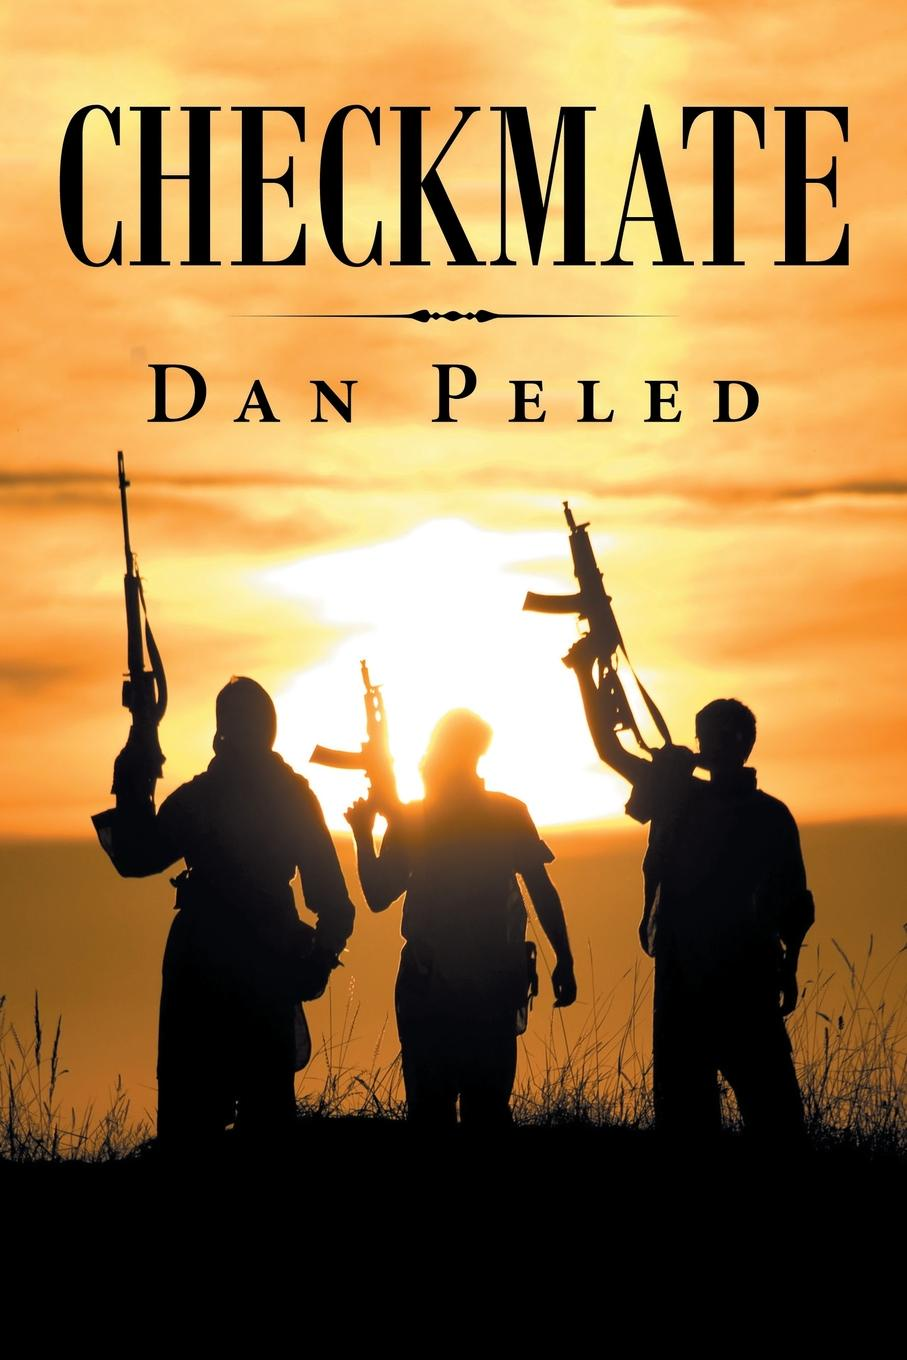 Dan Peled Checkmate facing the modern